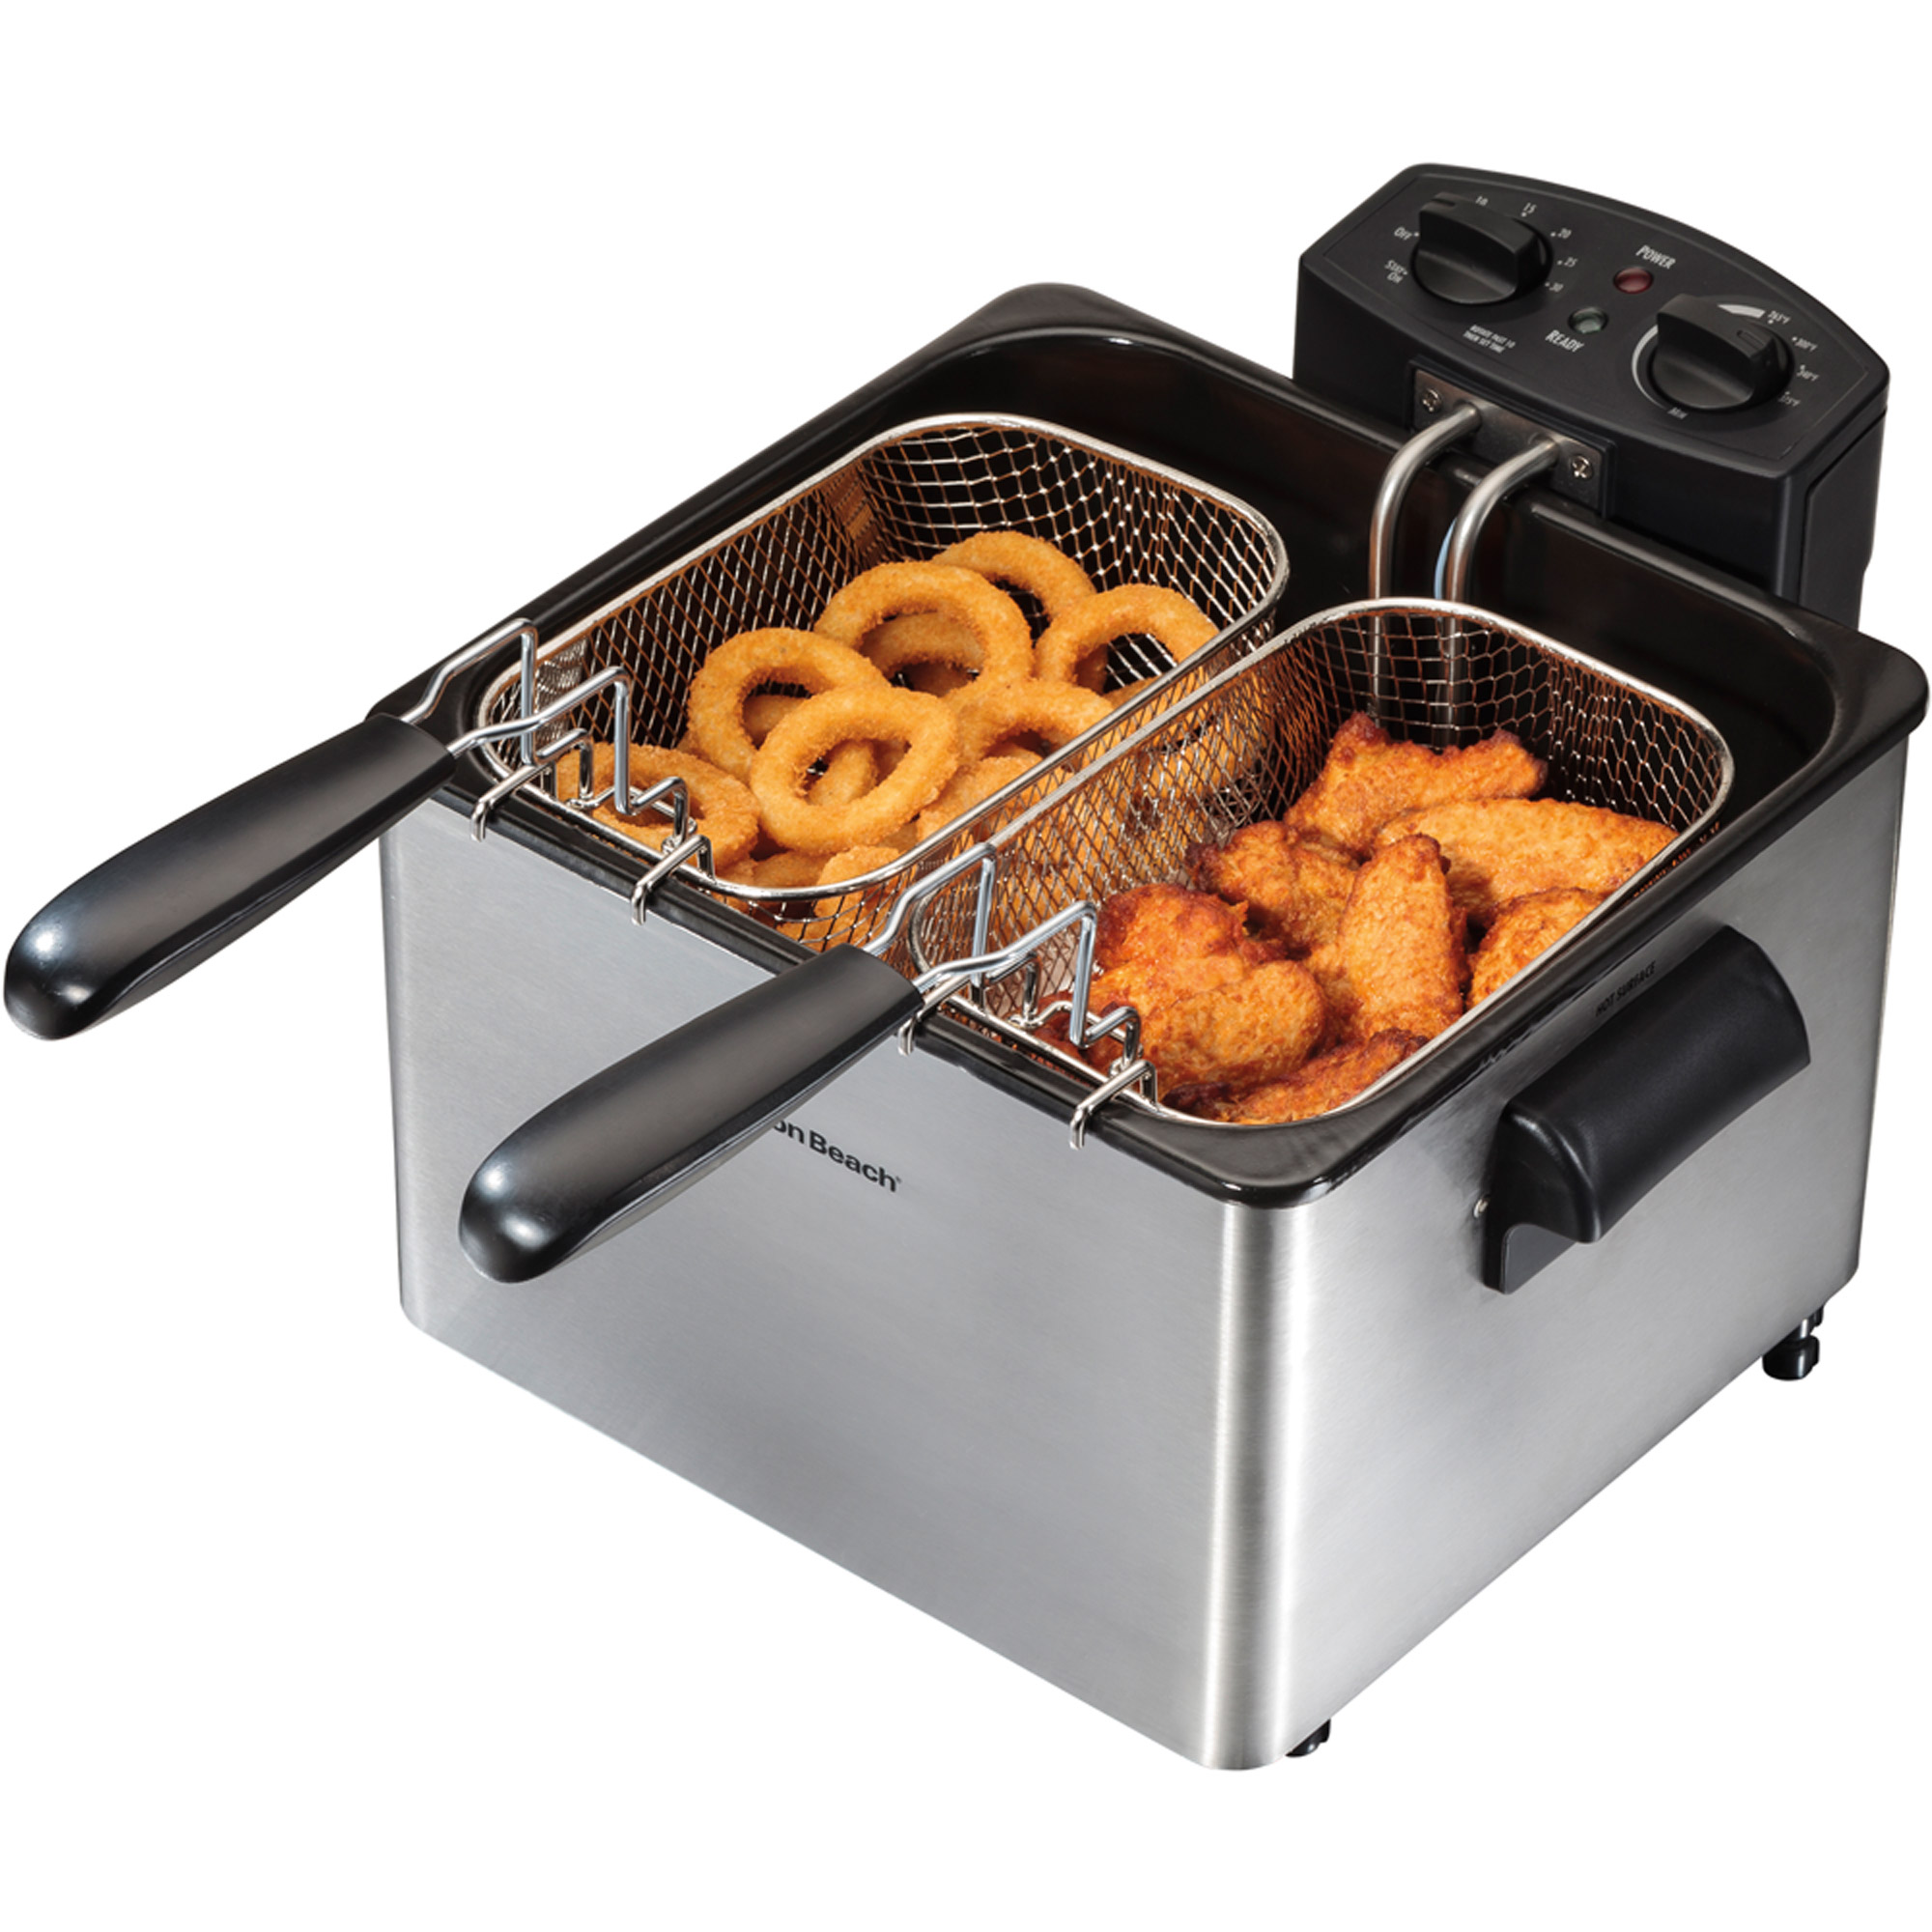 Hamilton Beach Professional Style Deep Fryer | Model# 35034   Walmart.com